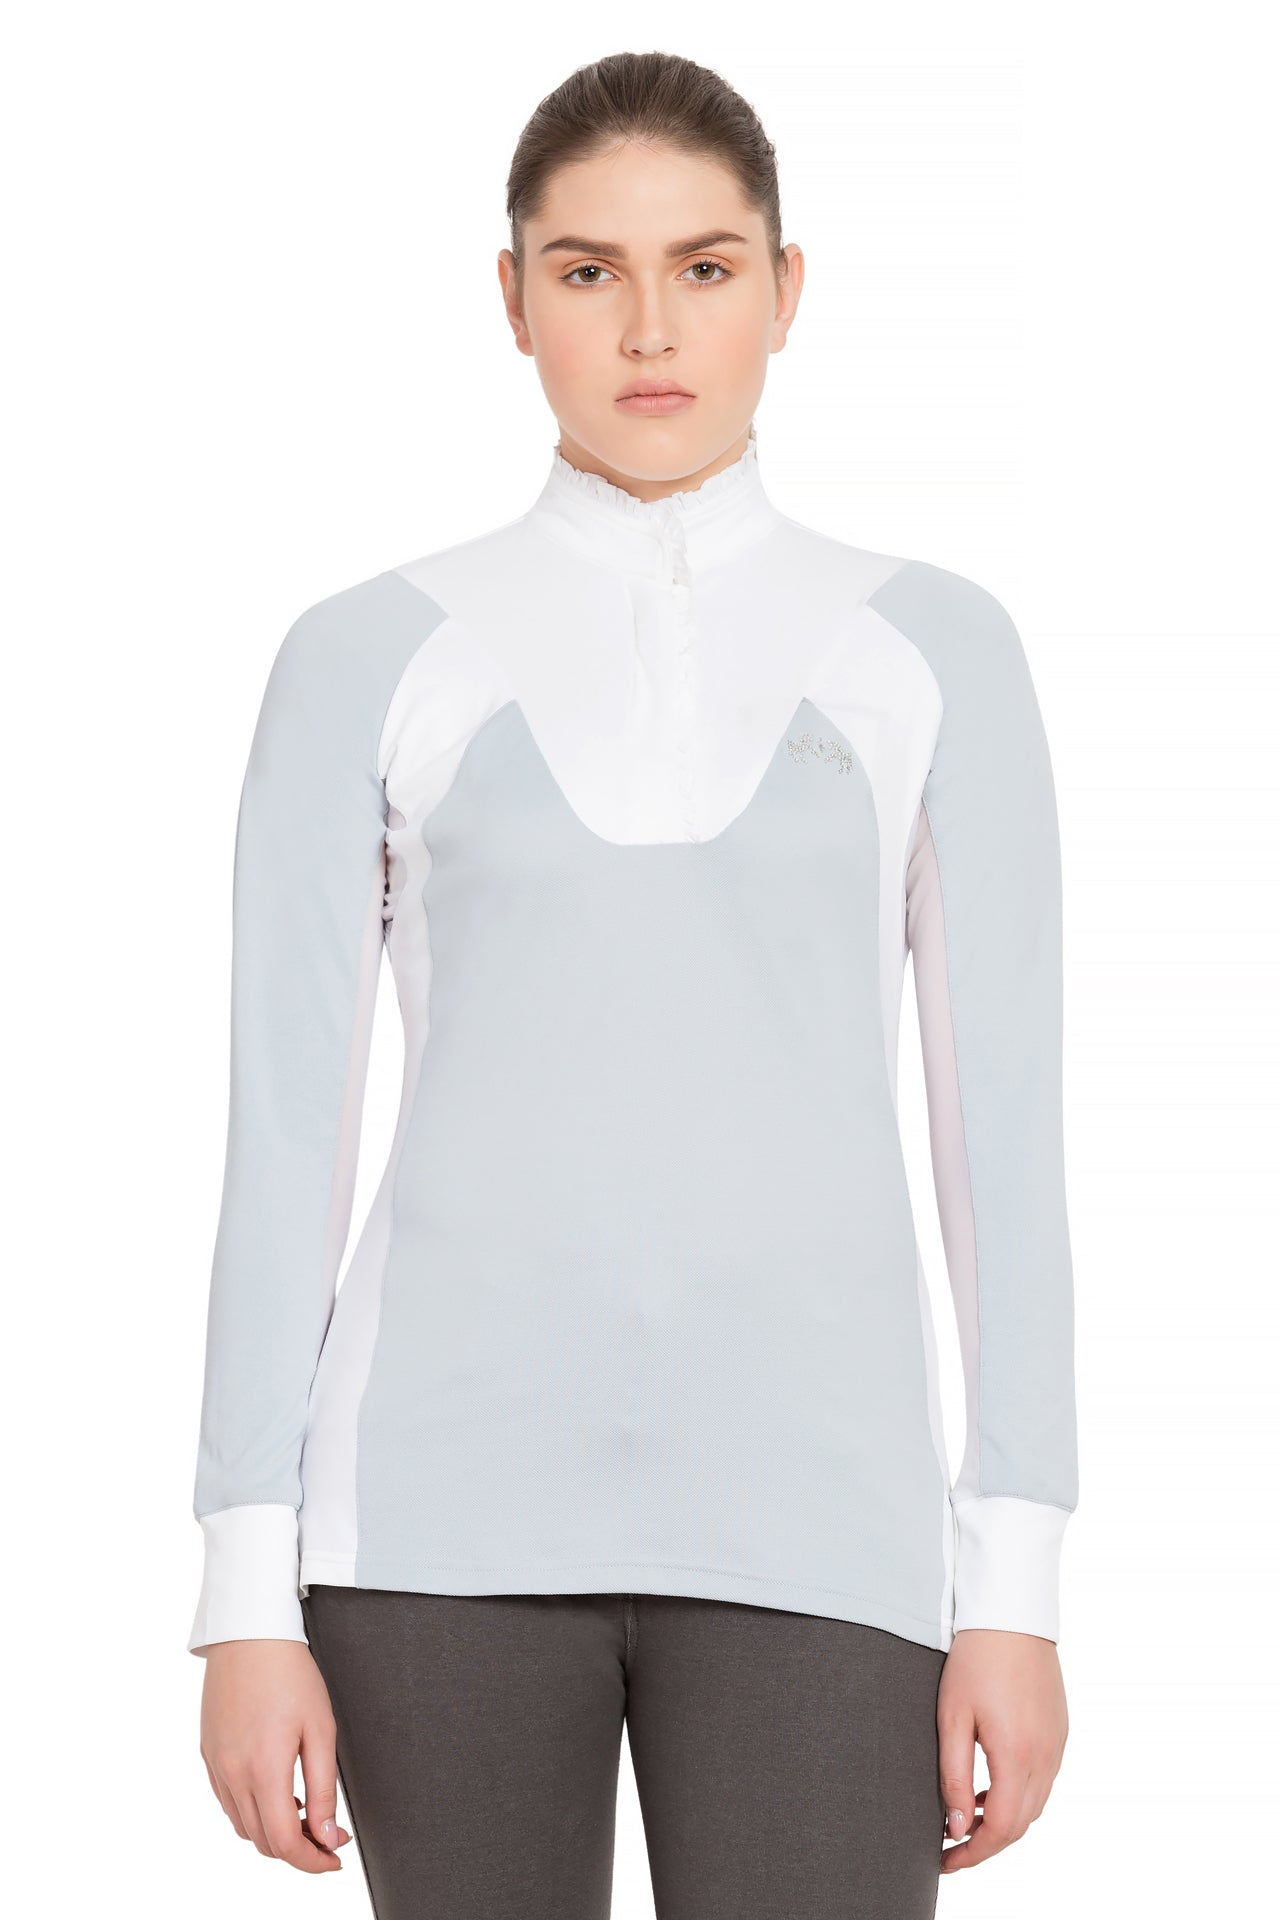 Ladies Chelsea Long Sleeve Show Shirt - Equine Couture - Breeches.com